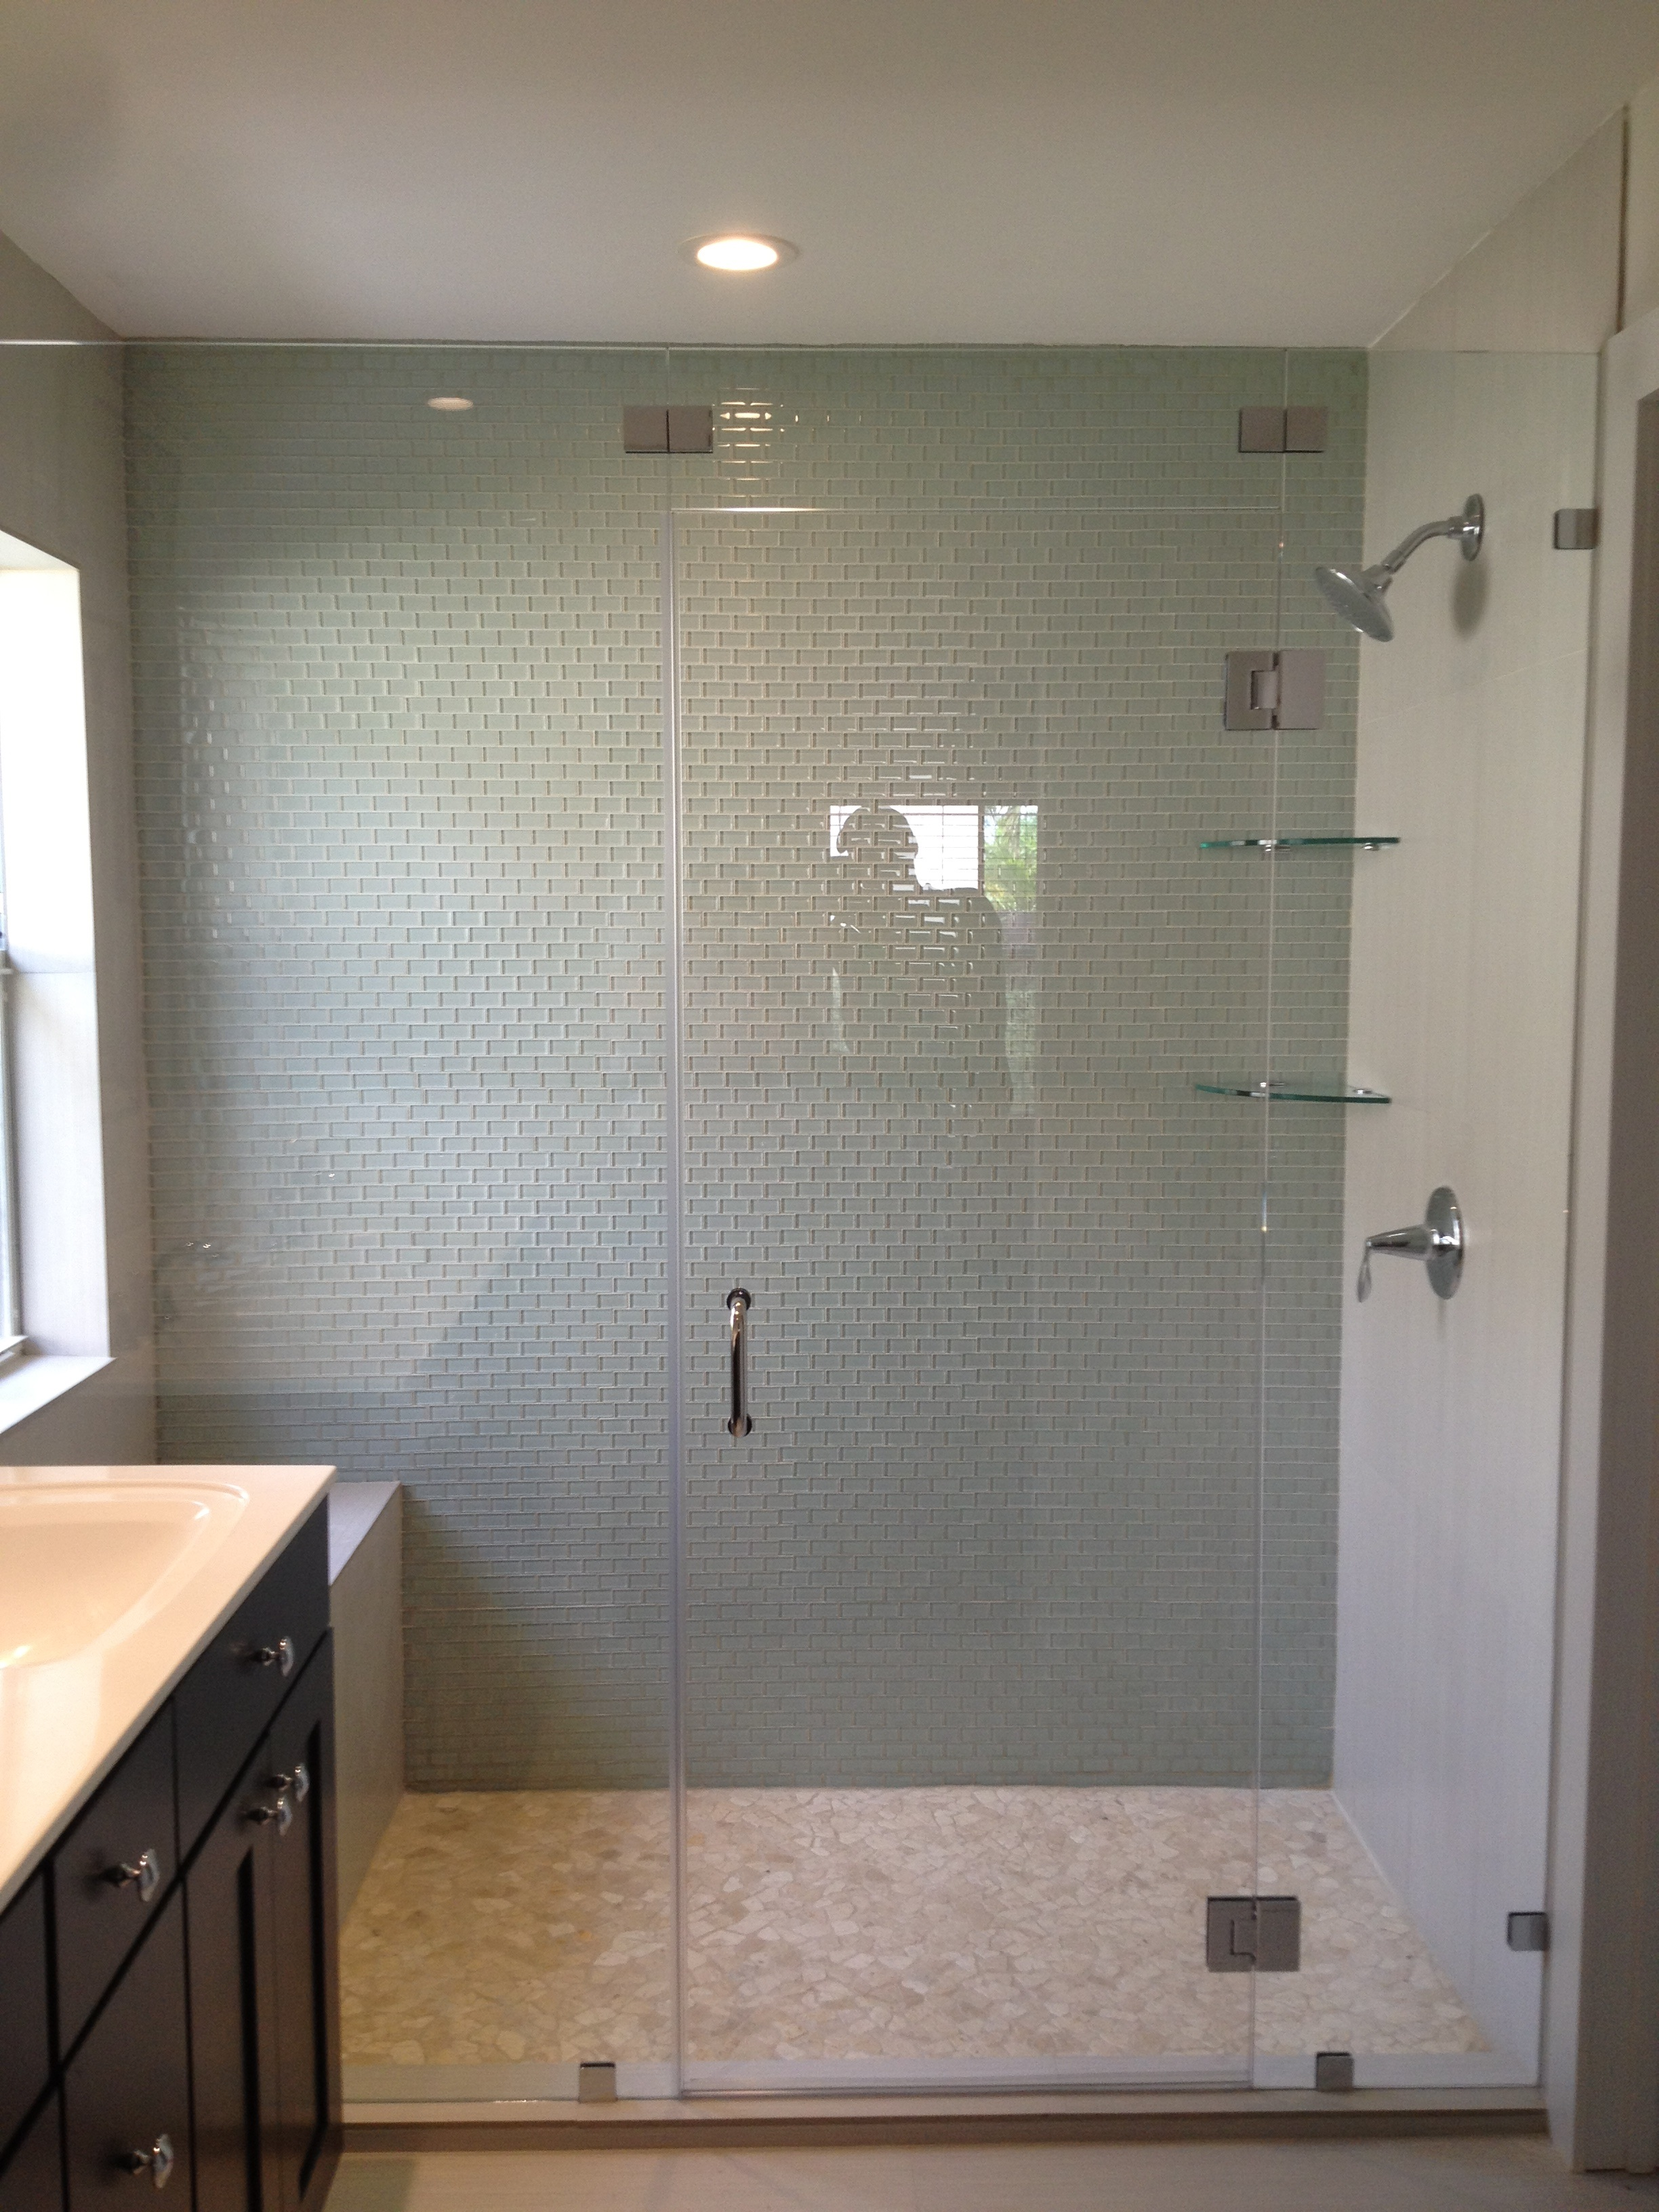 Framless Shower Glass Doors And Mirrors. Frameless Shower Door